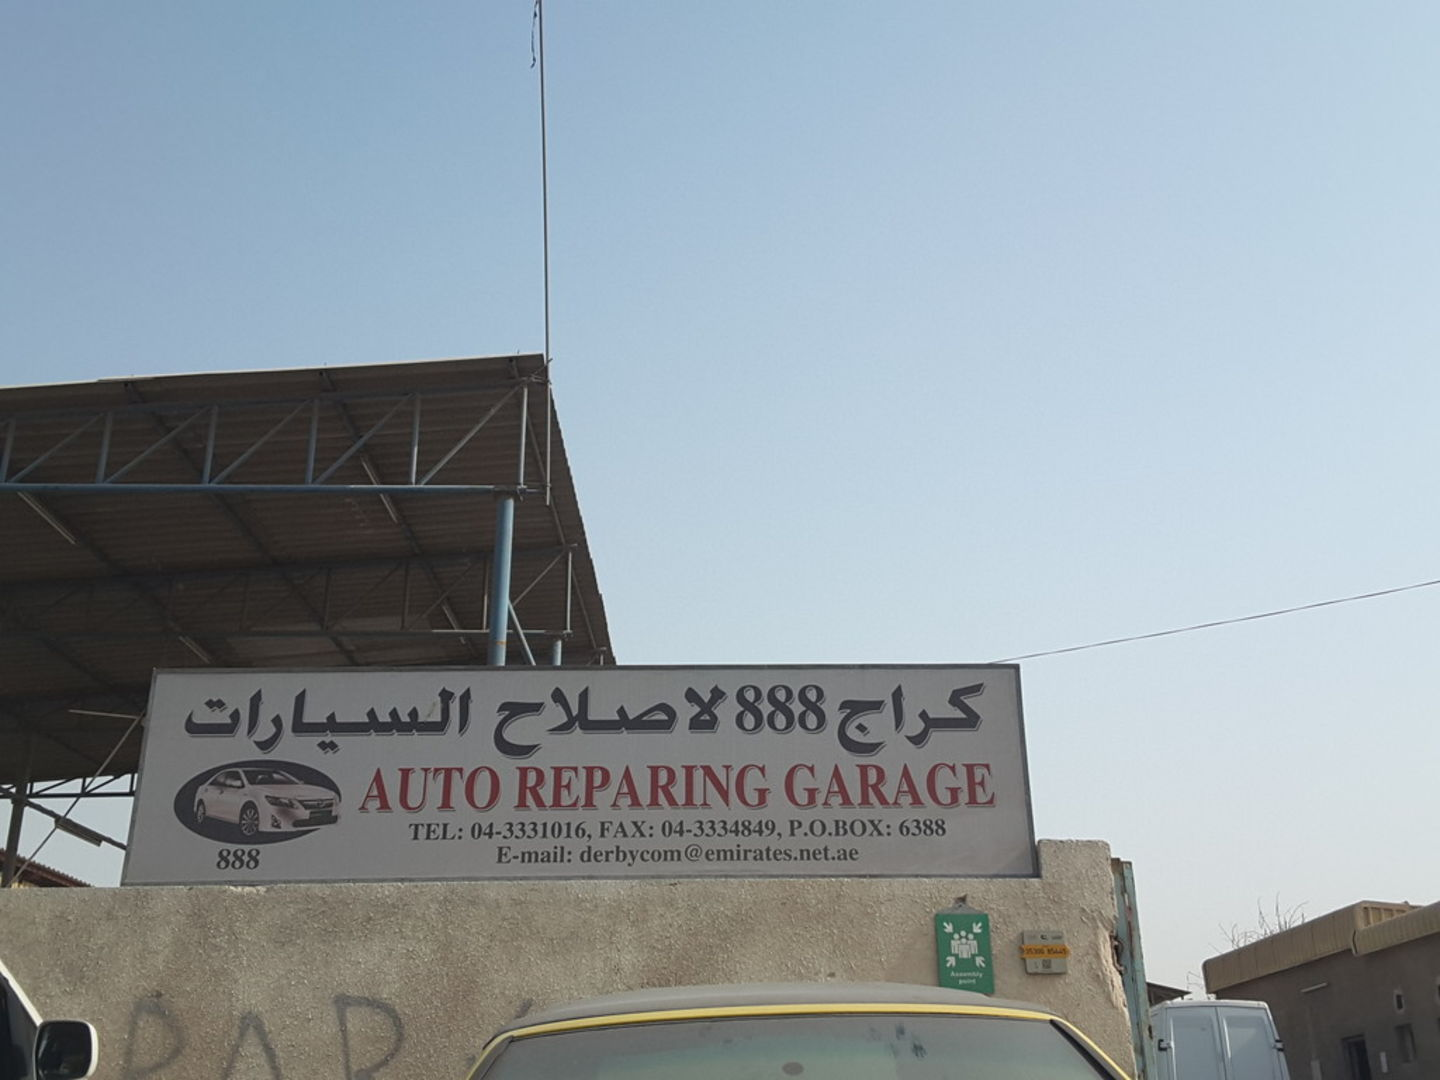 HiDubai-business-8-8-8-auto-repairing-garage-transport-vehicle-services-car-assistance-repair-ras-al-khor-industrial-2-dubai-2